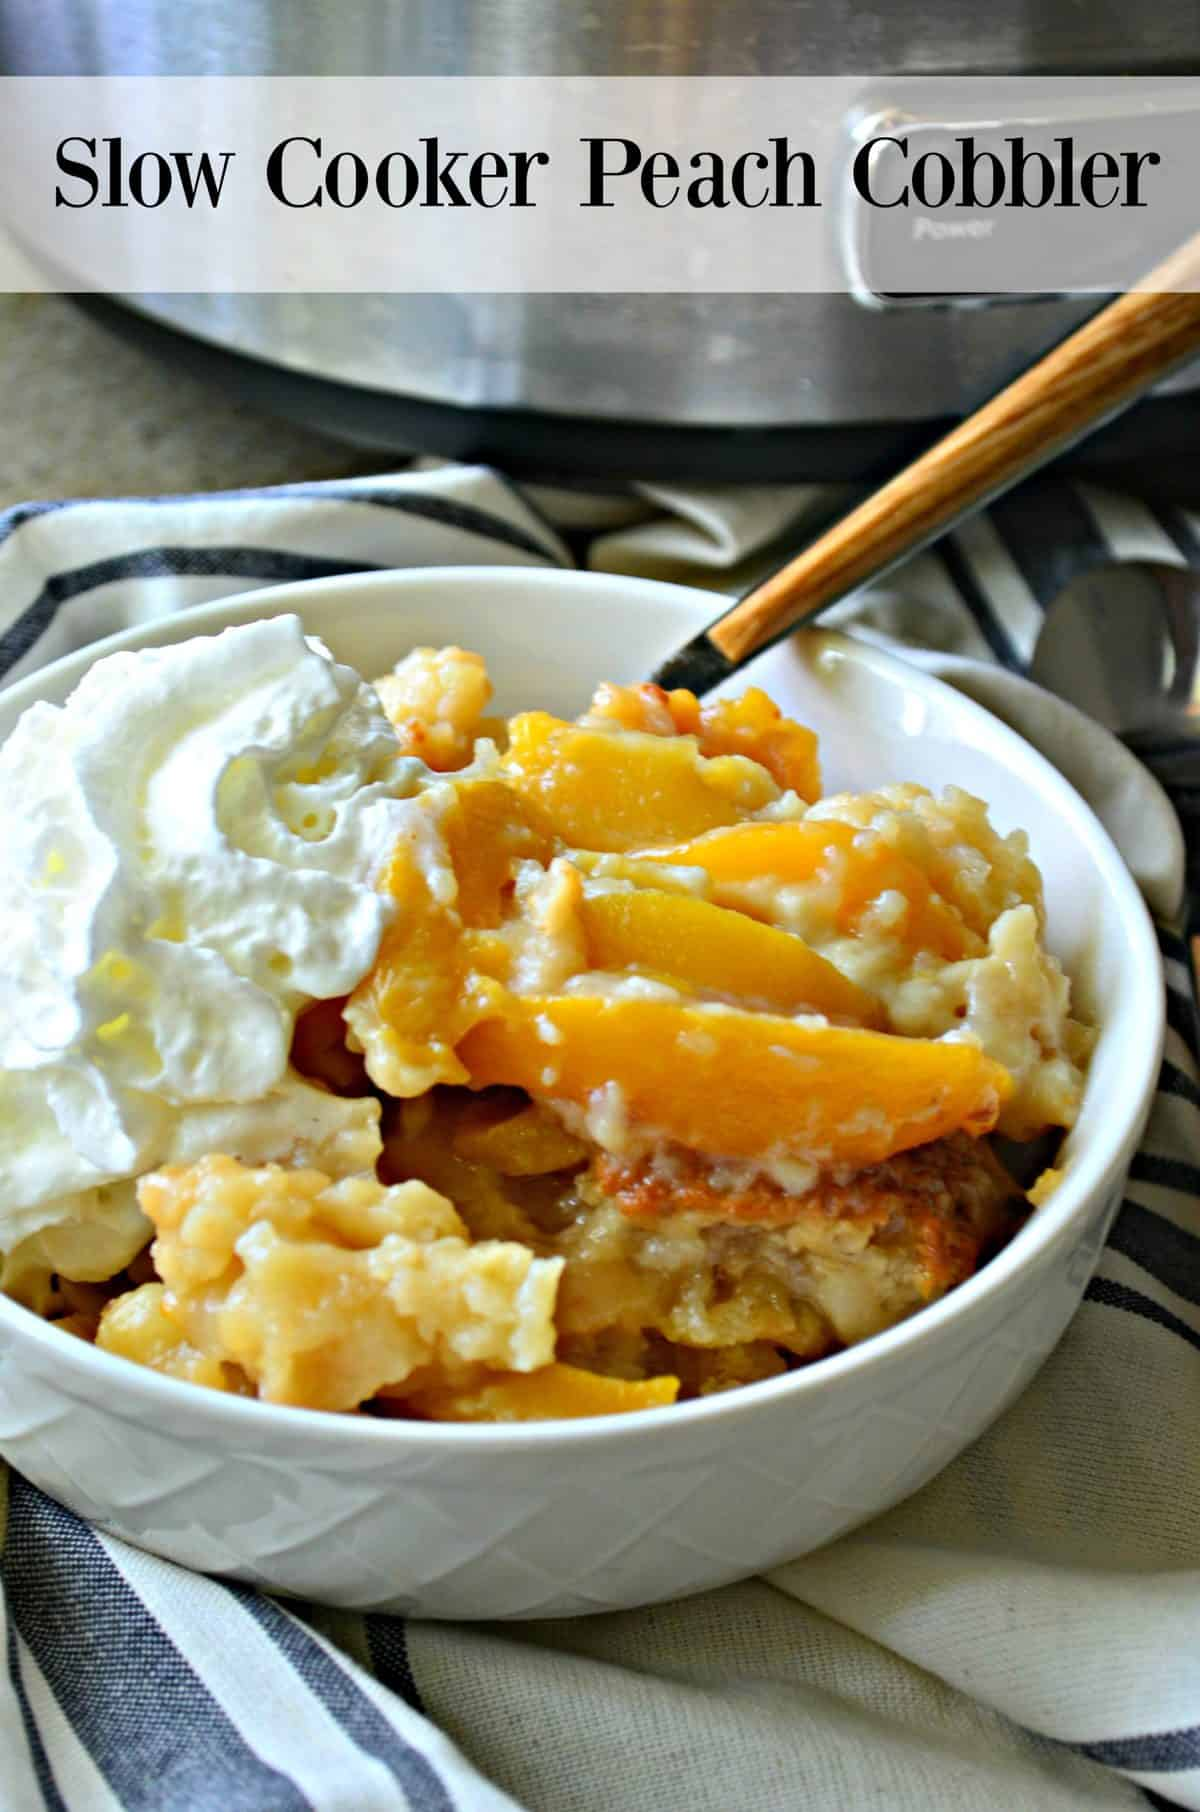 Top view of white dish filled with peach slices, whipped cream, and cobbler with title text.